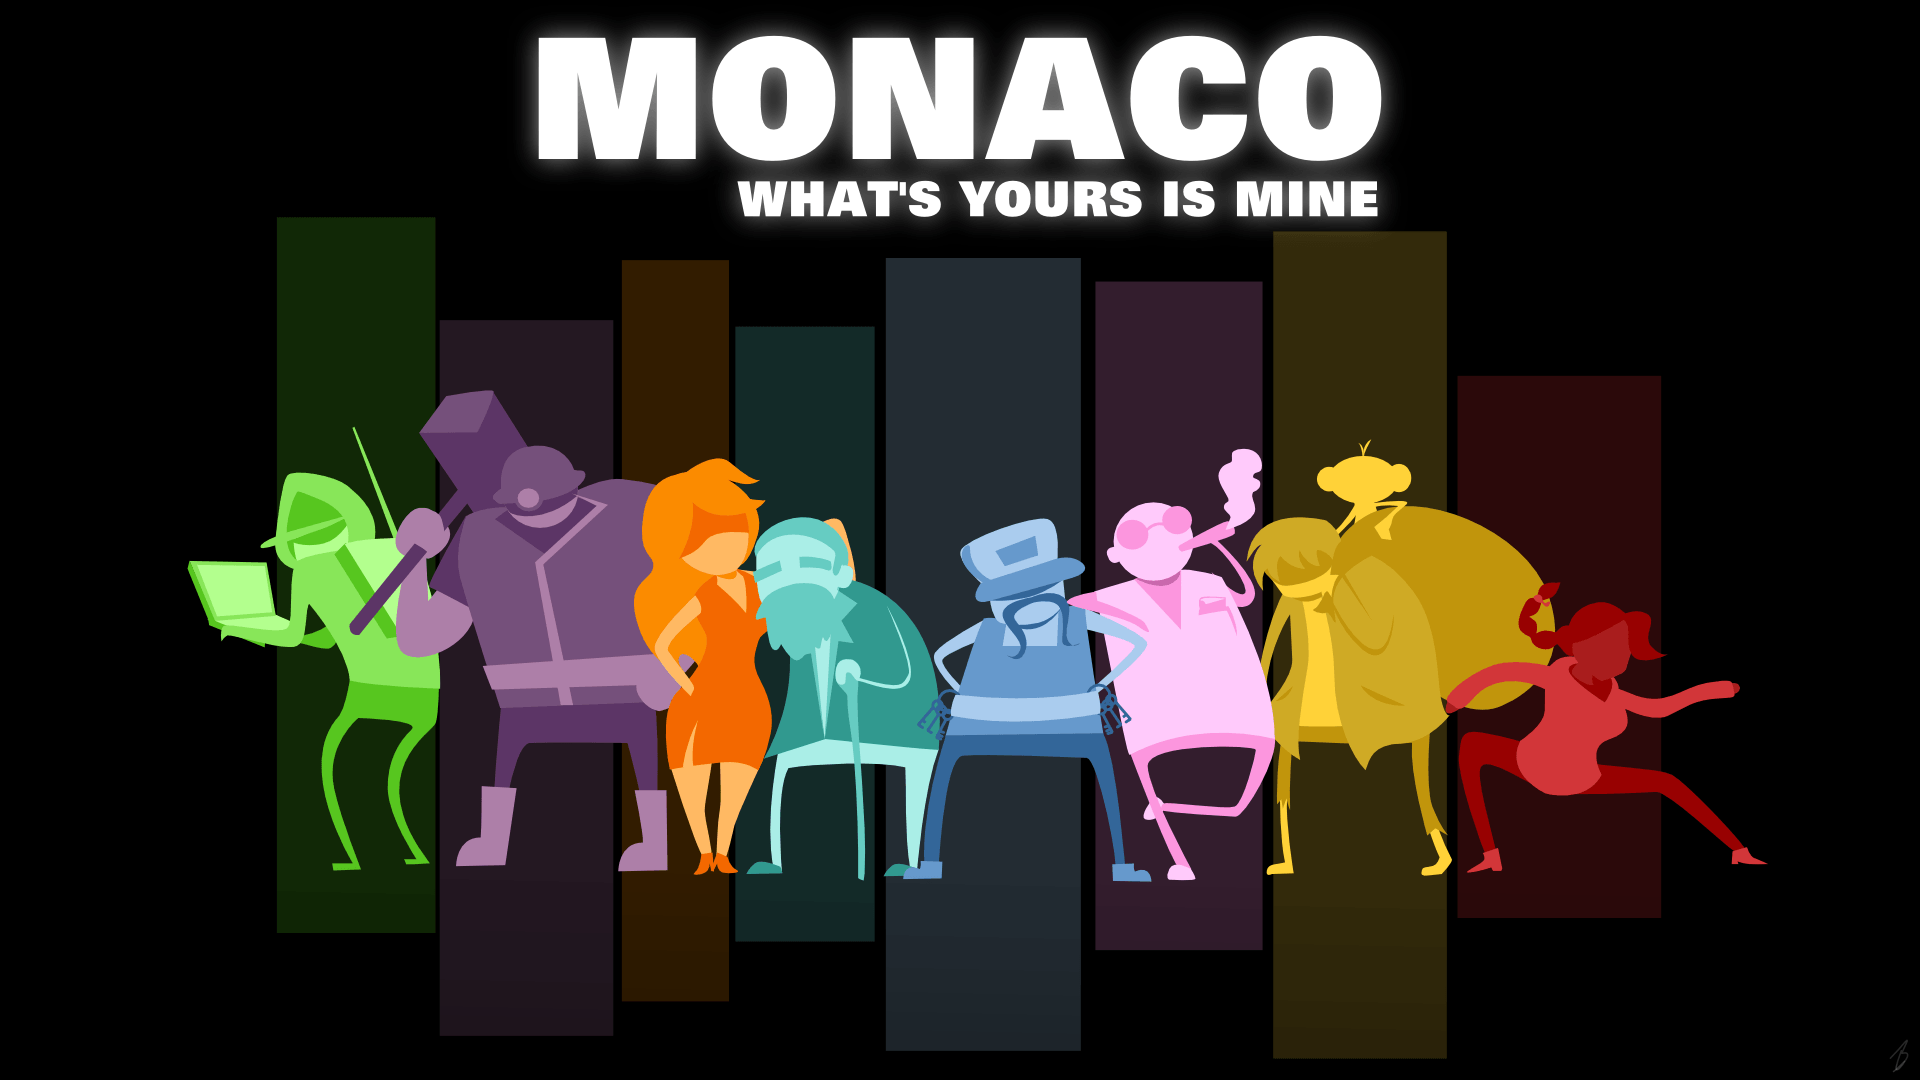 Monaco_What's_Yours_Is_Mine